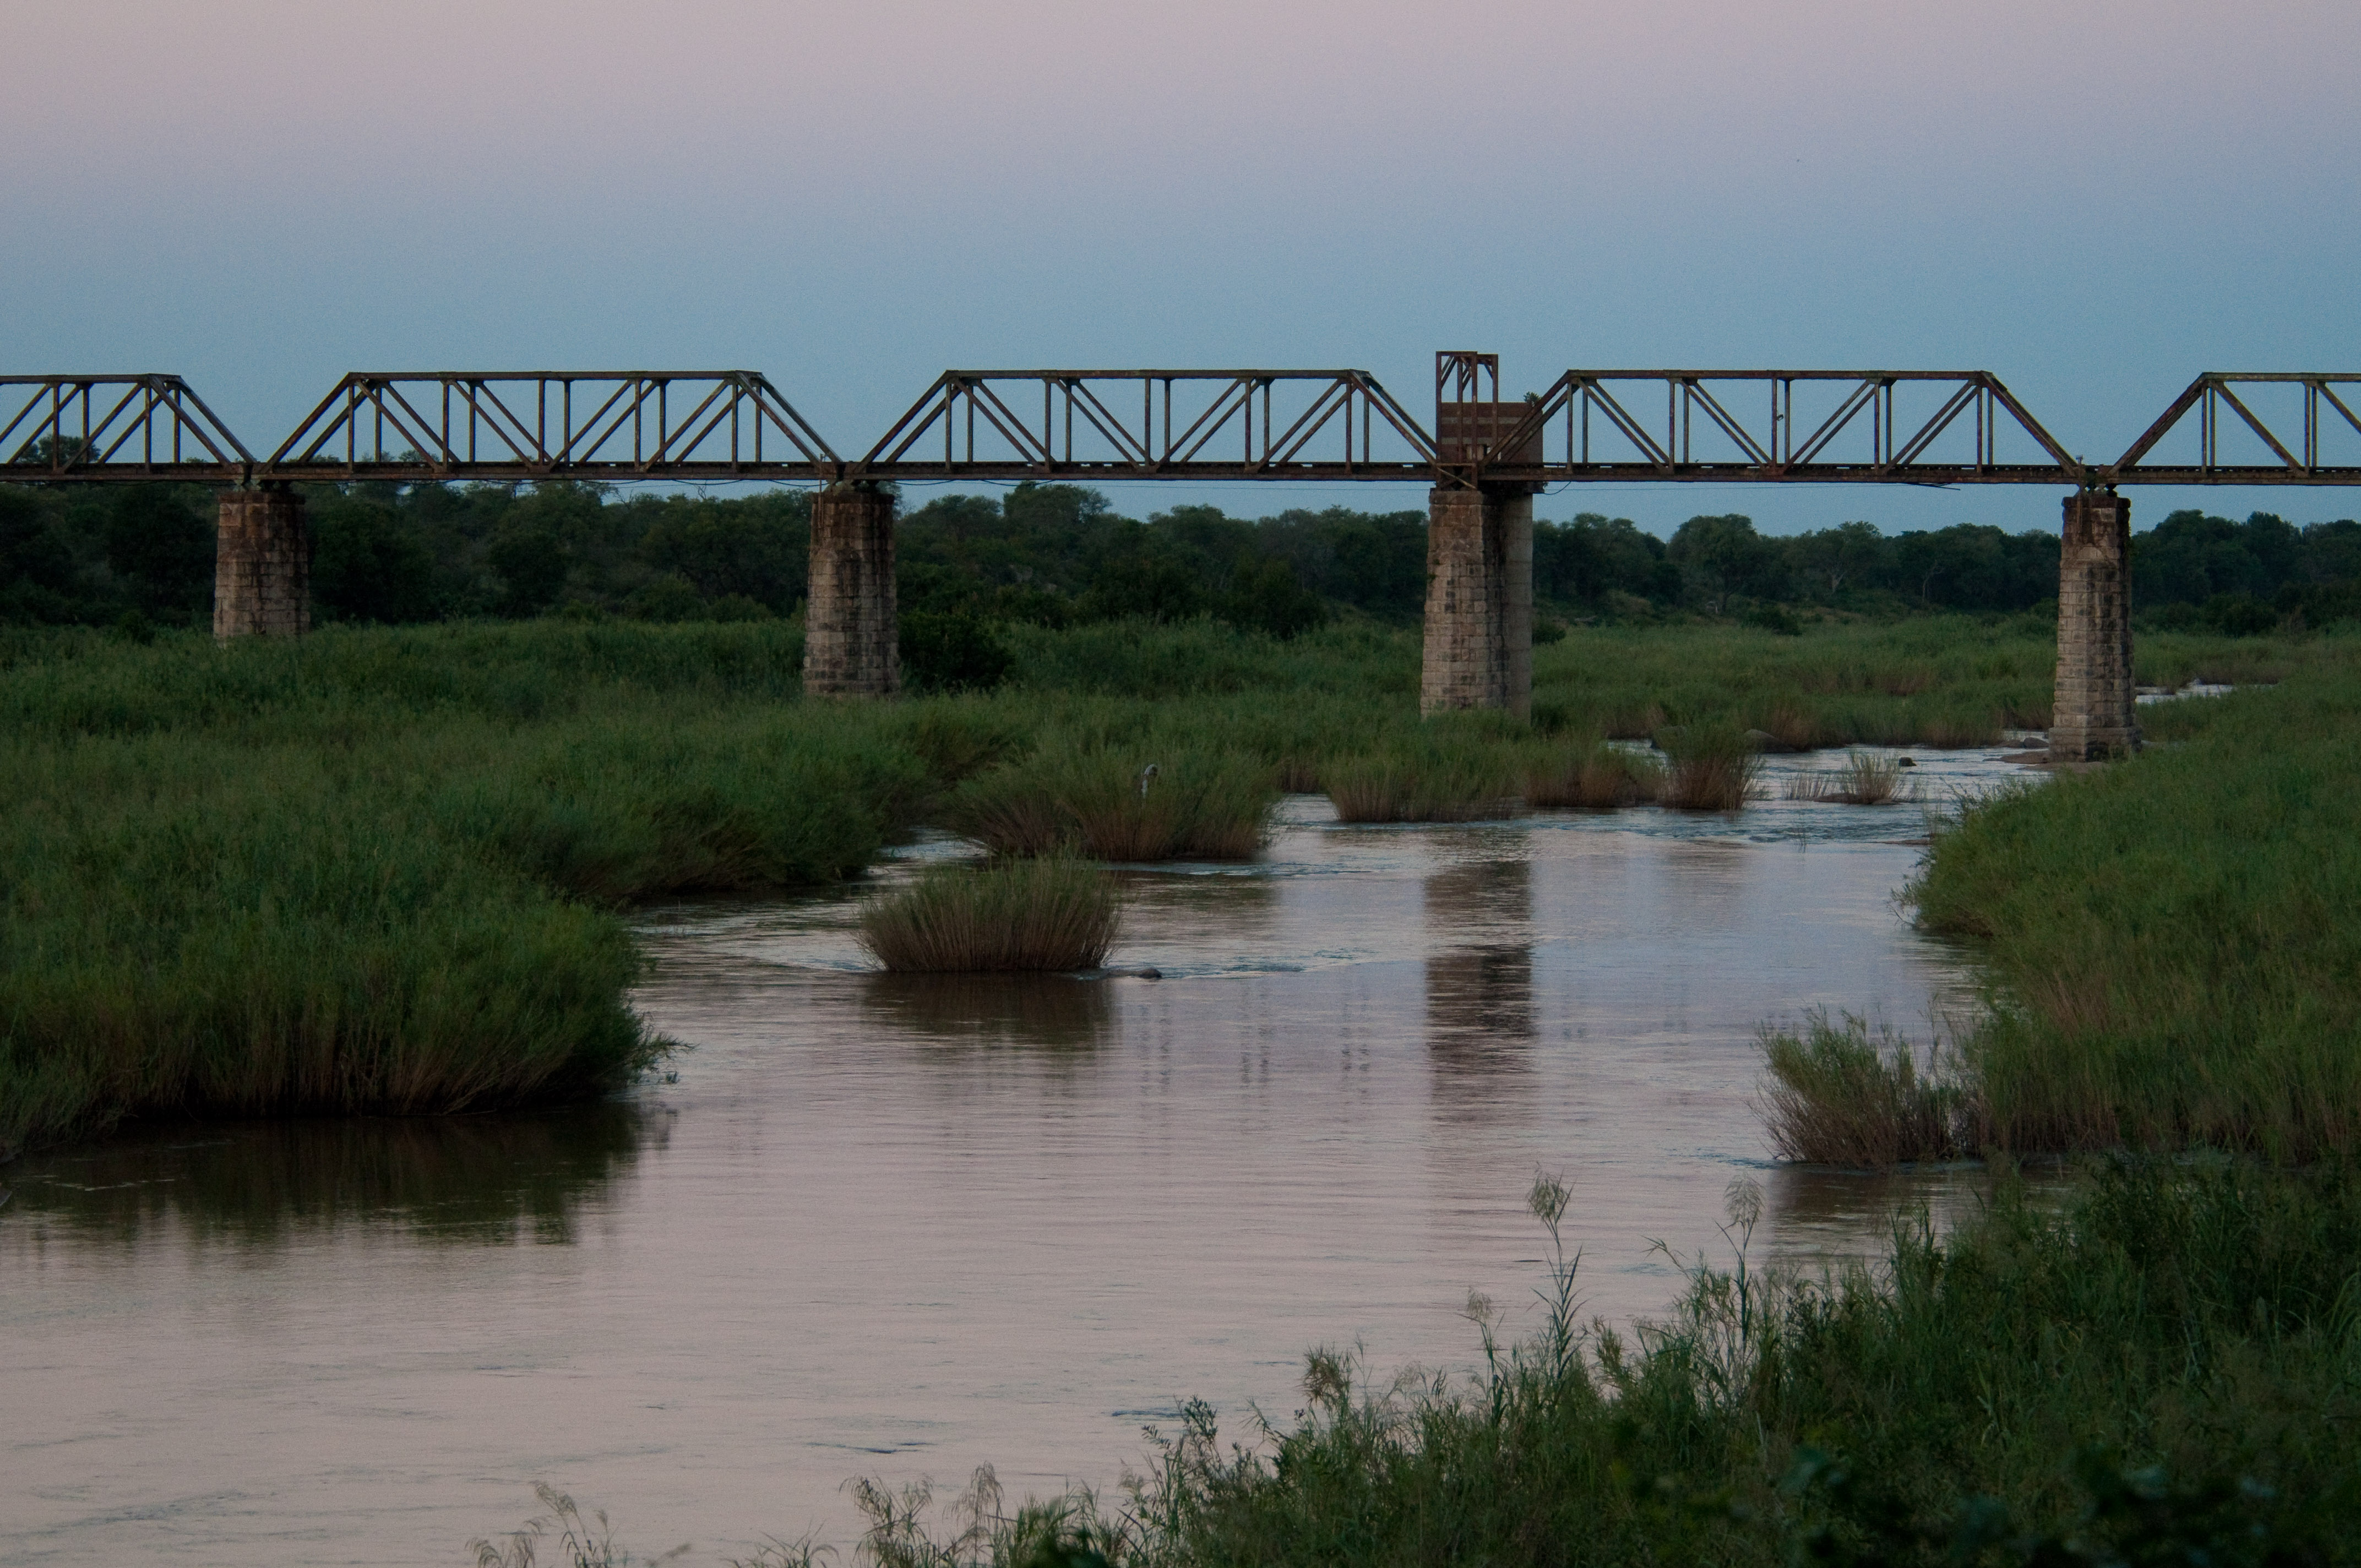 Sabie South Africa  city photo : Sabie River at Dusk, South Africa Wikimedia Commons